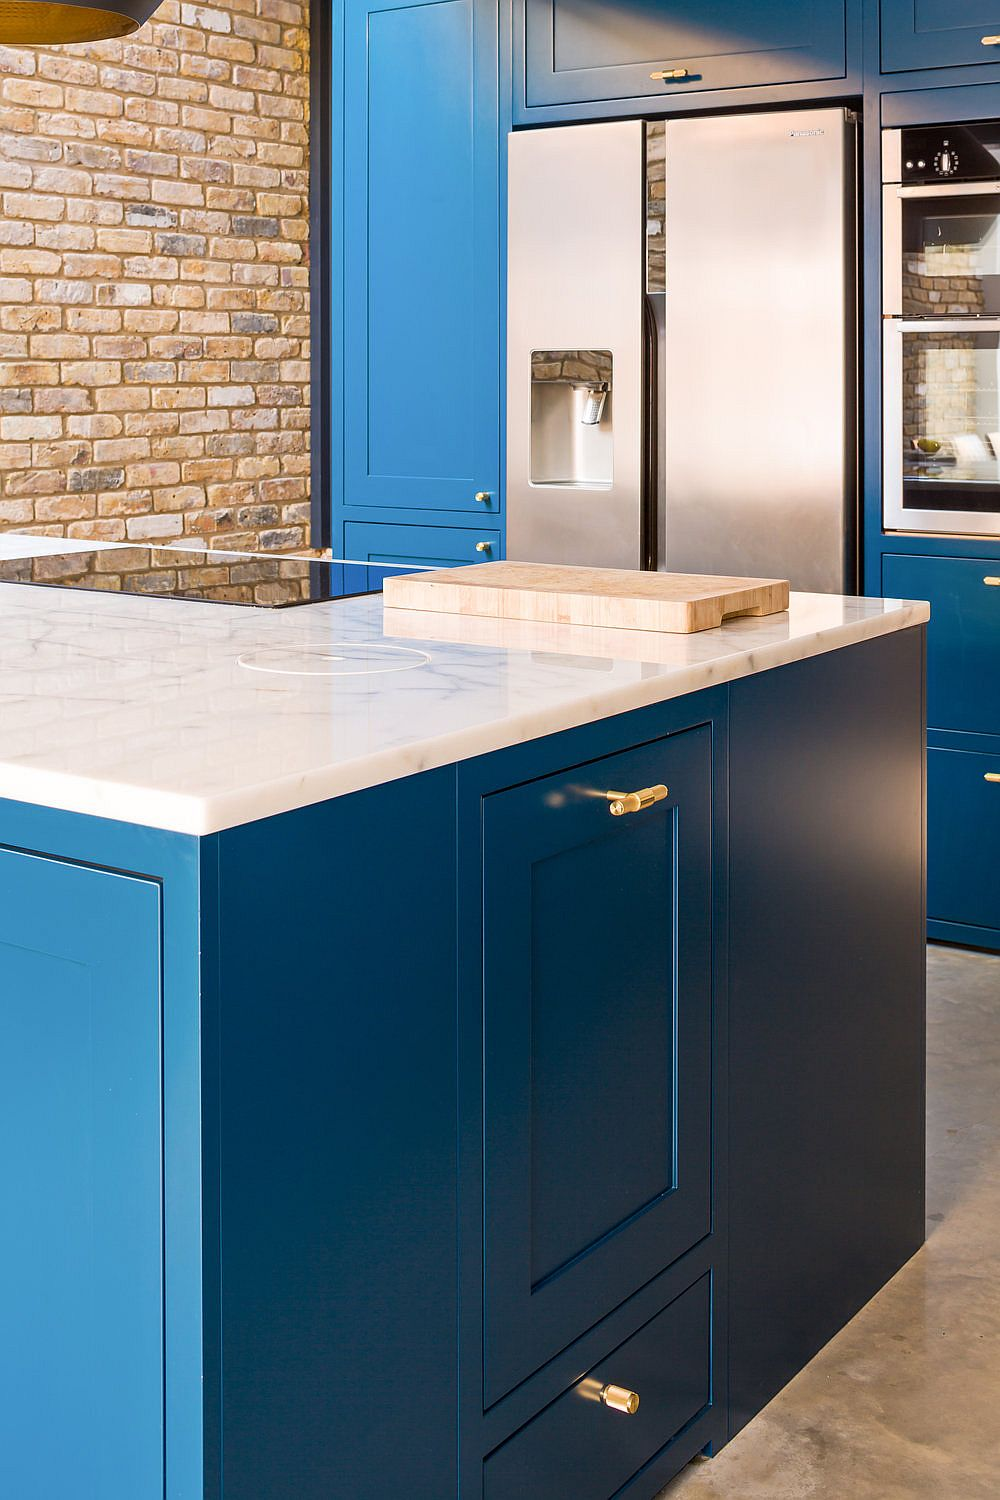 Kitchen island in navy blue with white marble countertop and brass handles for the cabinets